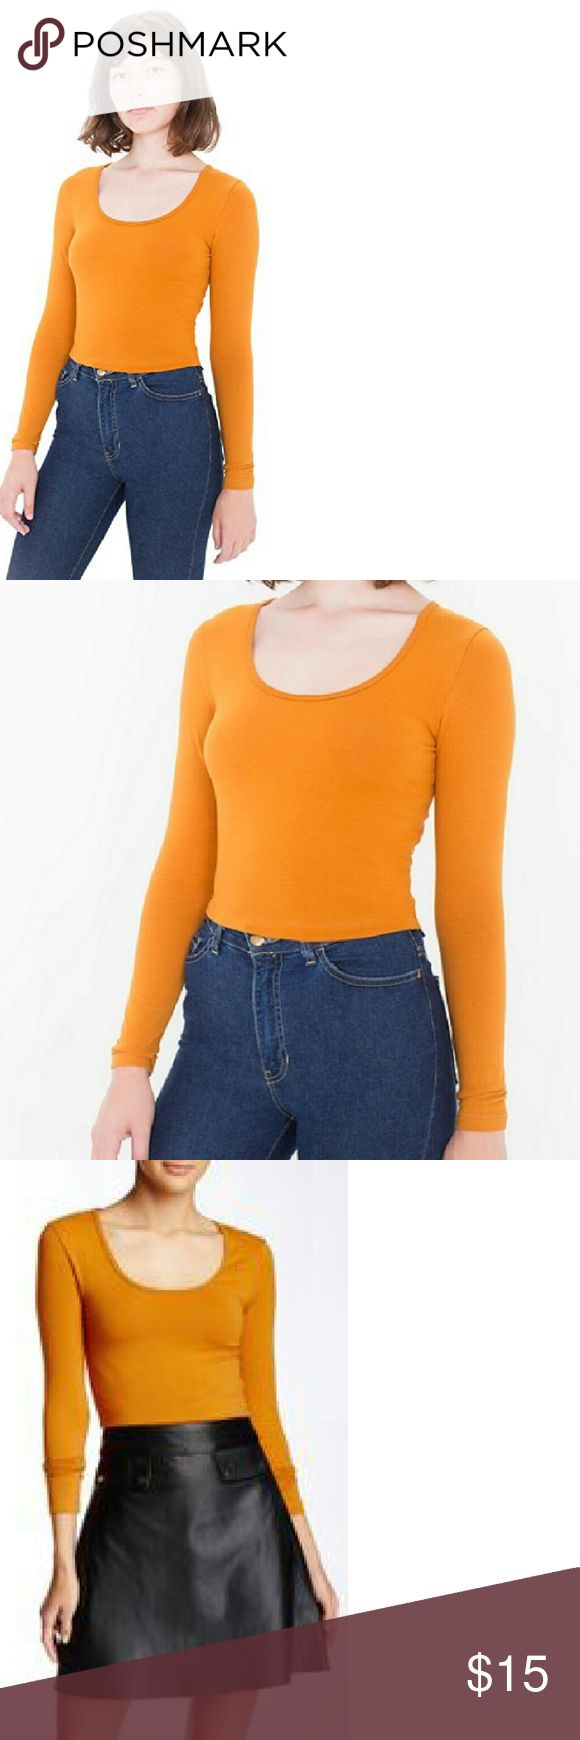 American Apparel Reed Crop Top in Ochre Scoop neck crop top from American Apparel in Ochre- the color is NOT as bright as the photos show, it is more of a mustard-y yellow. Cotton/spandex blend, long sleeve, NWOT (never worn, and still in the bag they were shipped in- a lot of American Apparel's items do not come with tags if you order online). Size S and XS available. American Apparel Tops Crop Tops